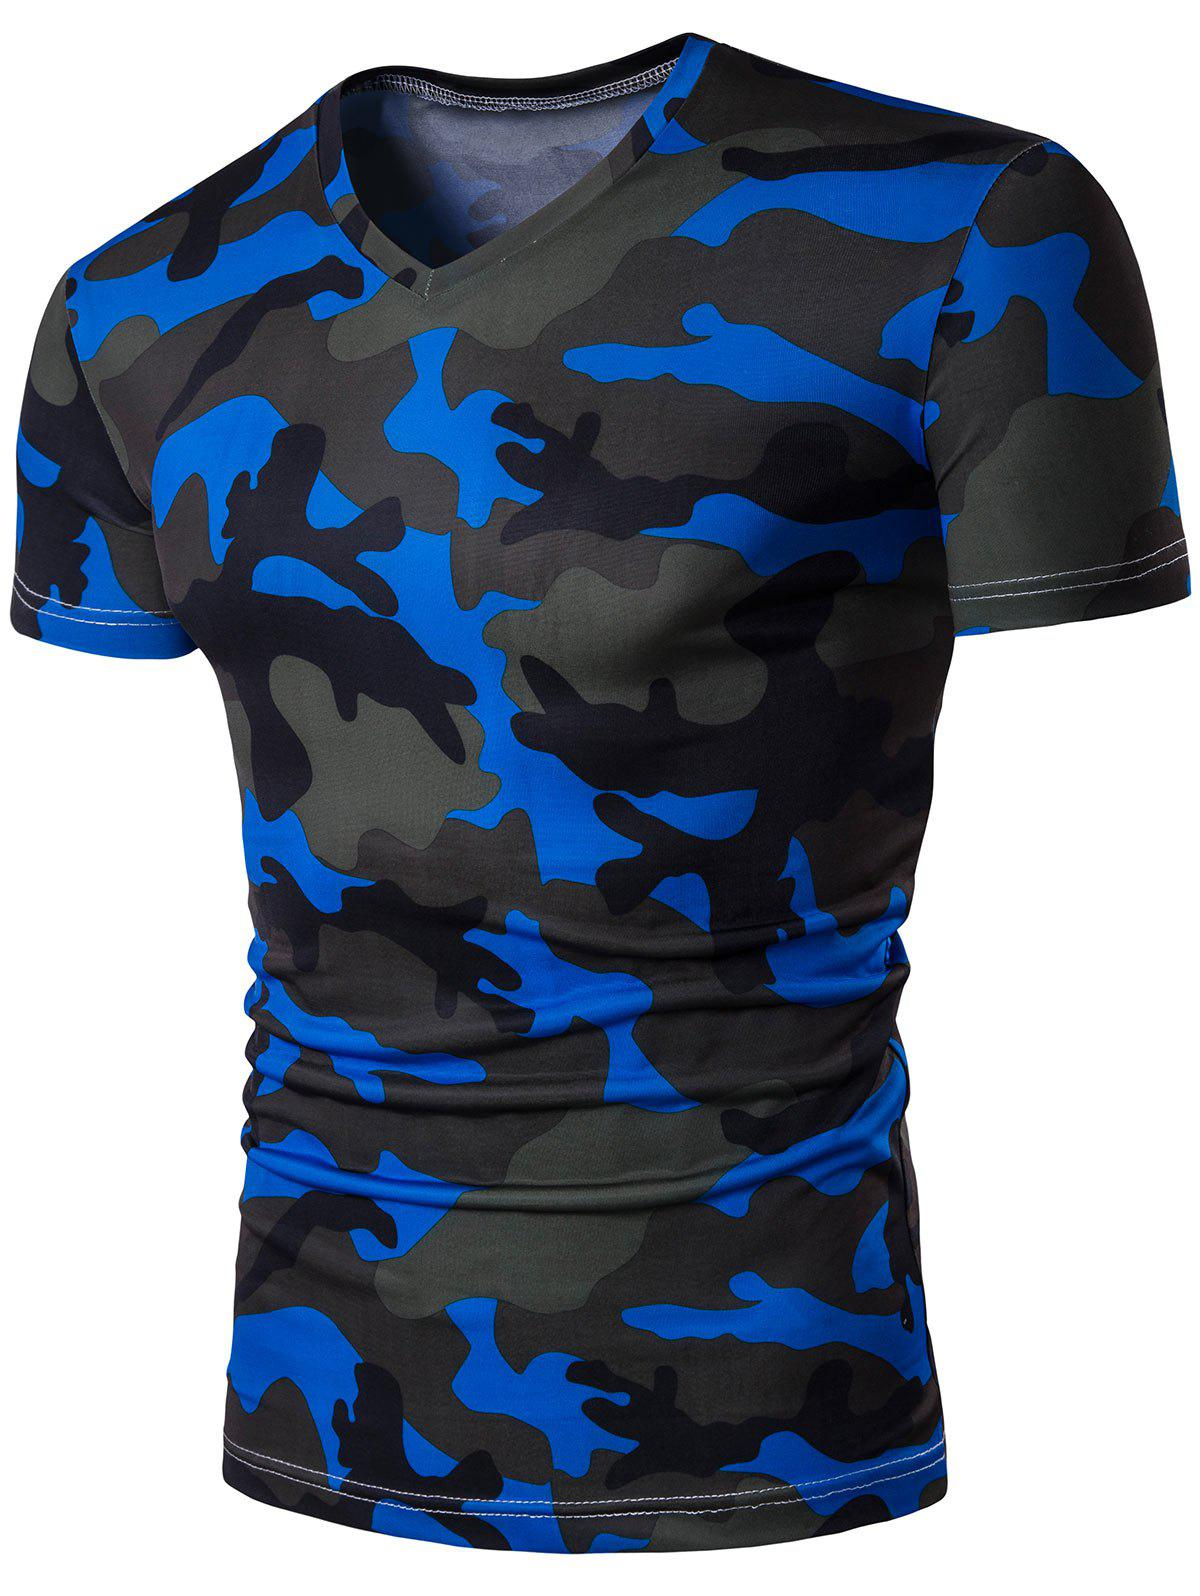 Short sleeve v neck camo t shirt blue xl in t shirts for Camouflage t shirt design